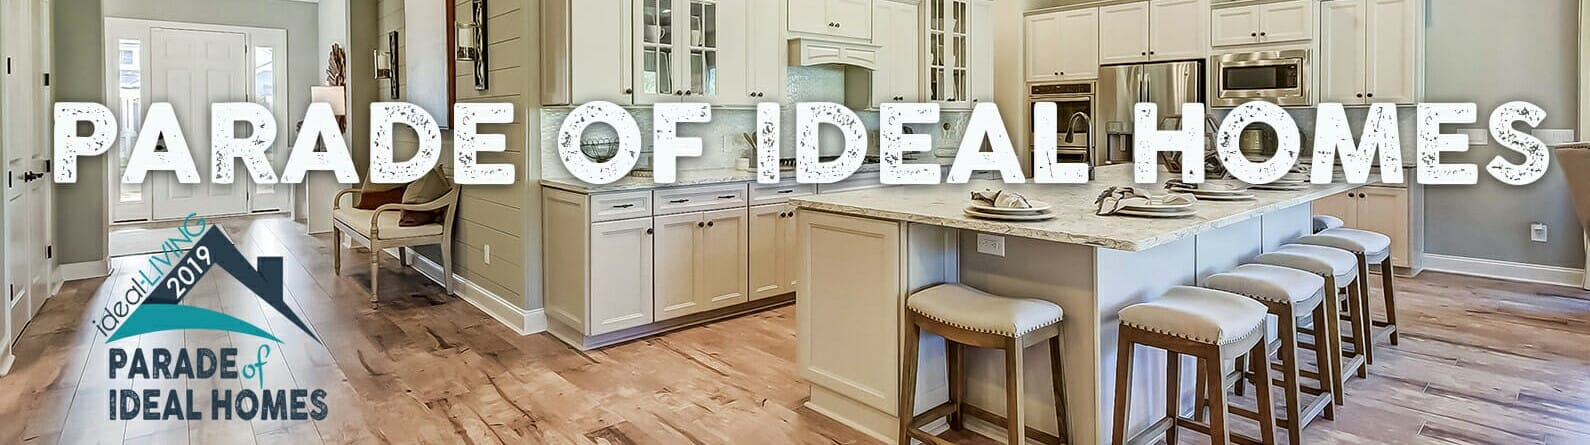 October is Parade of Ideal Homes Month. Plan Your Travel to View Model Homes This Fall.